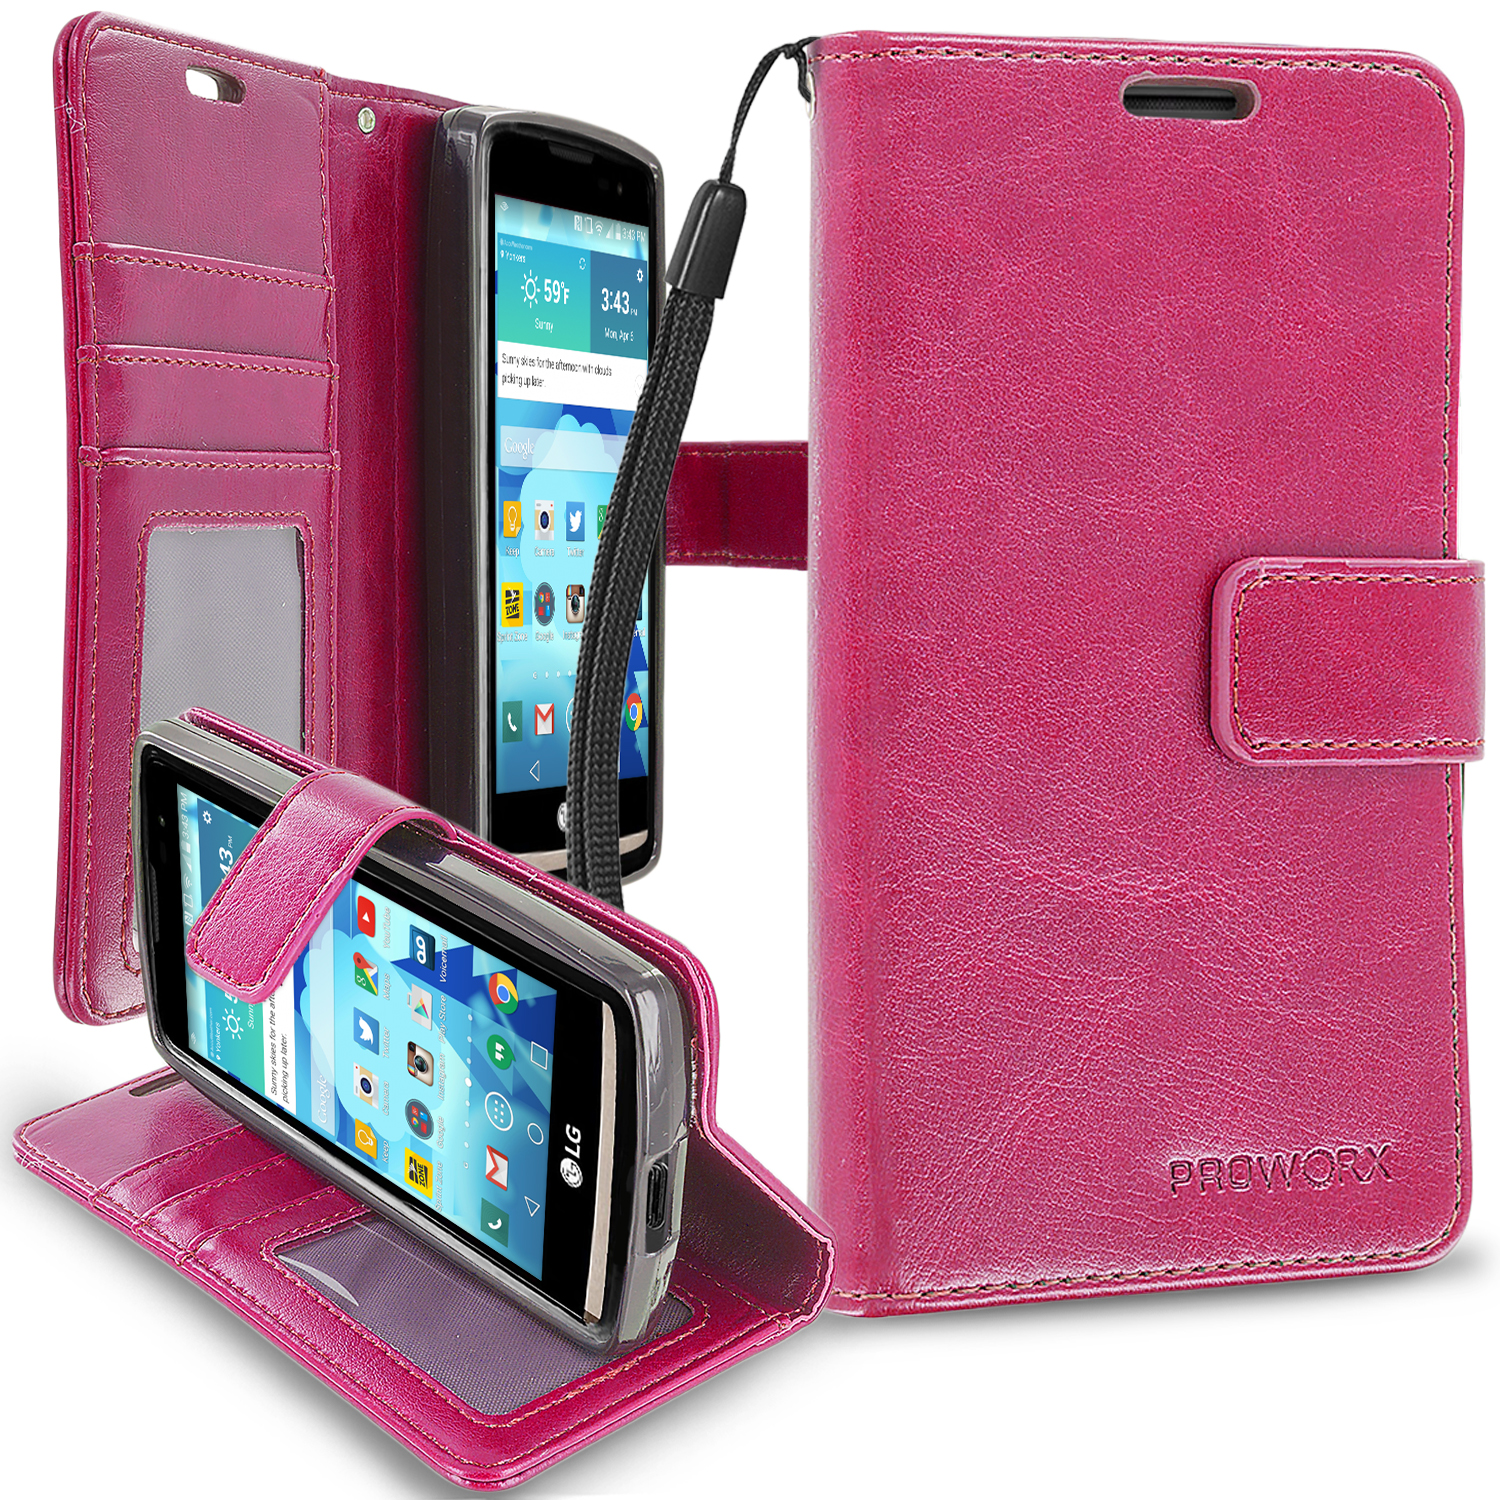 LG Tribute 2 Leon Power Destiny Hot Pink ProWorx Wallet Case Luxury PU Leather Case Cover With Card Slots & Stand